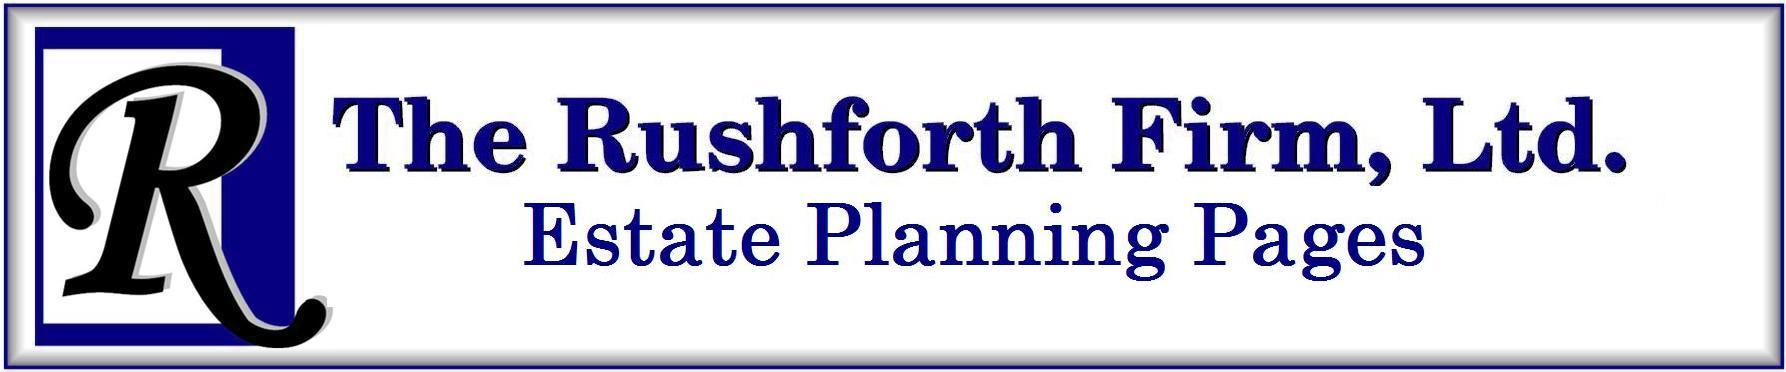 The Rushforth Firm Estate Planning Pages